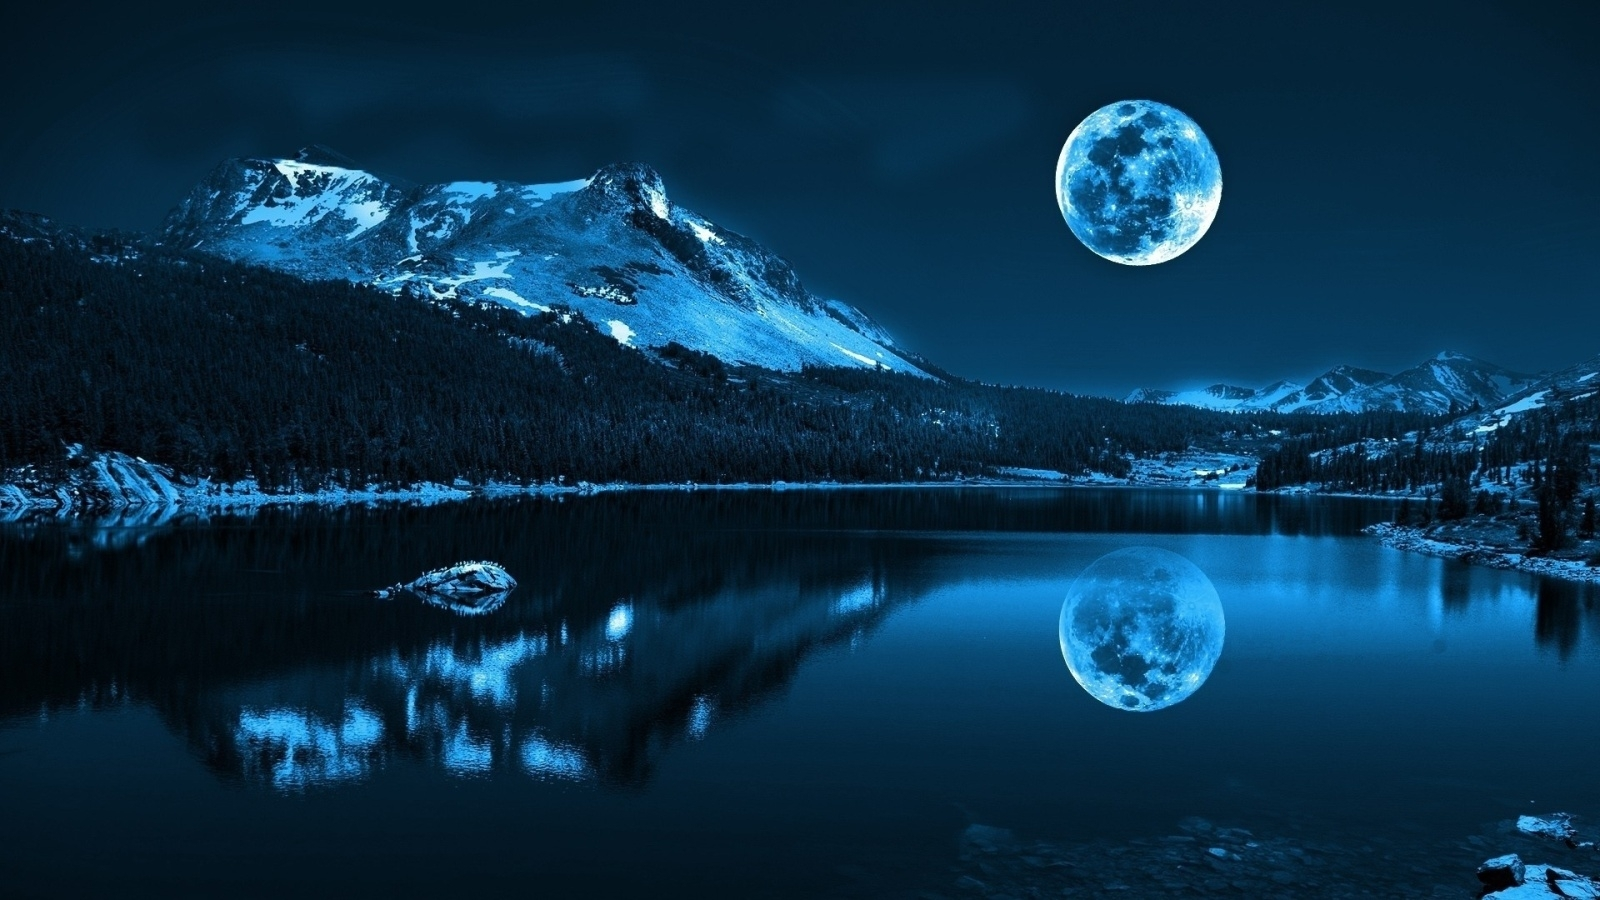 moon-beautiful-hd-free-wallpapers - hd wallpaper